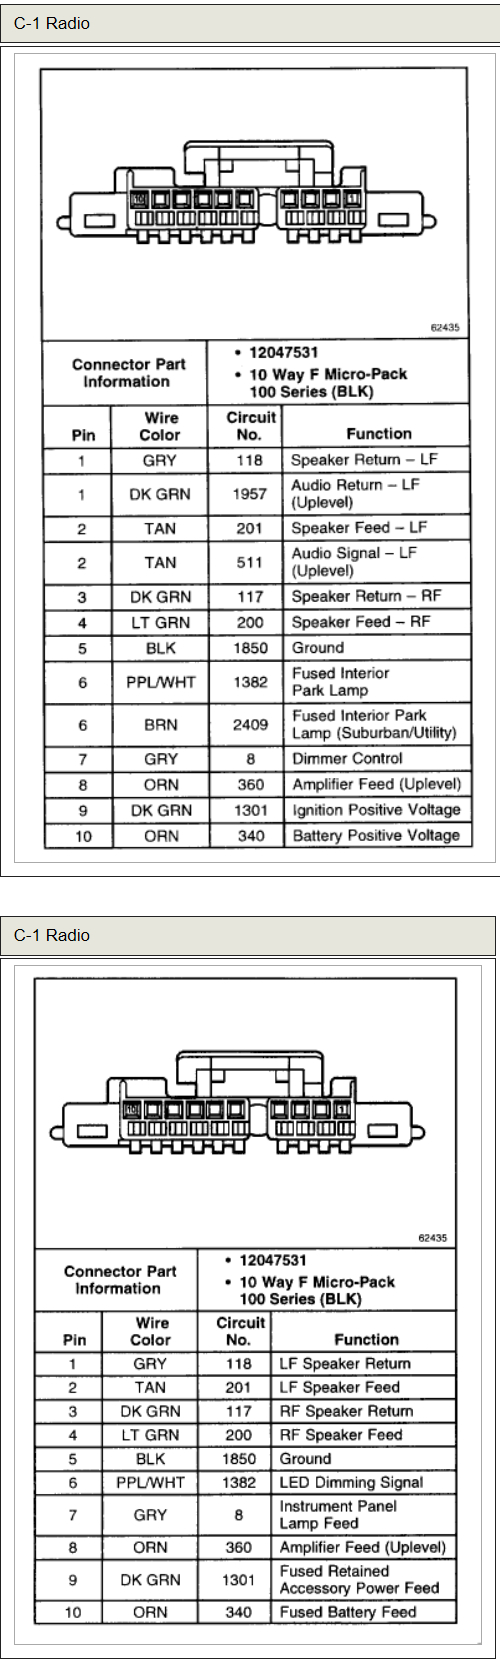 Chevy Tahoe Radio Wiring Diagram | Manual E-Books - 2002 Chevy Tahoe Radio Wiring Diagram